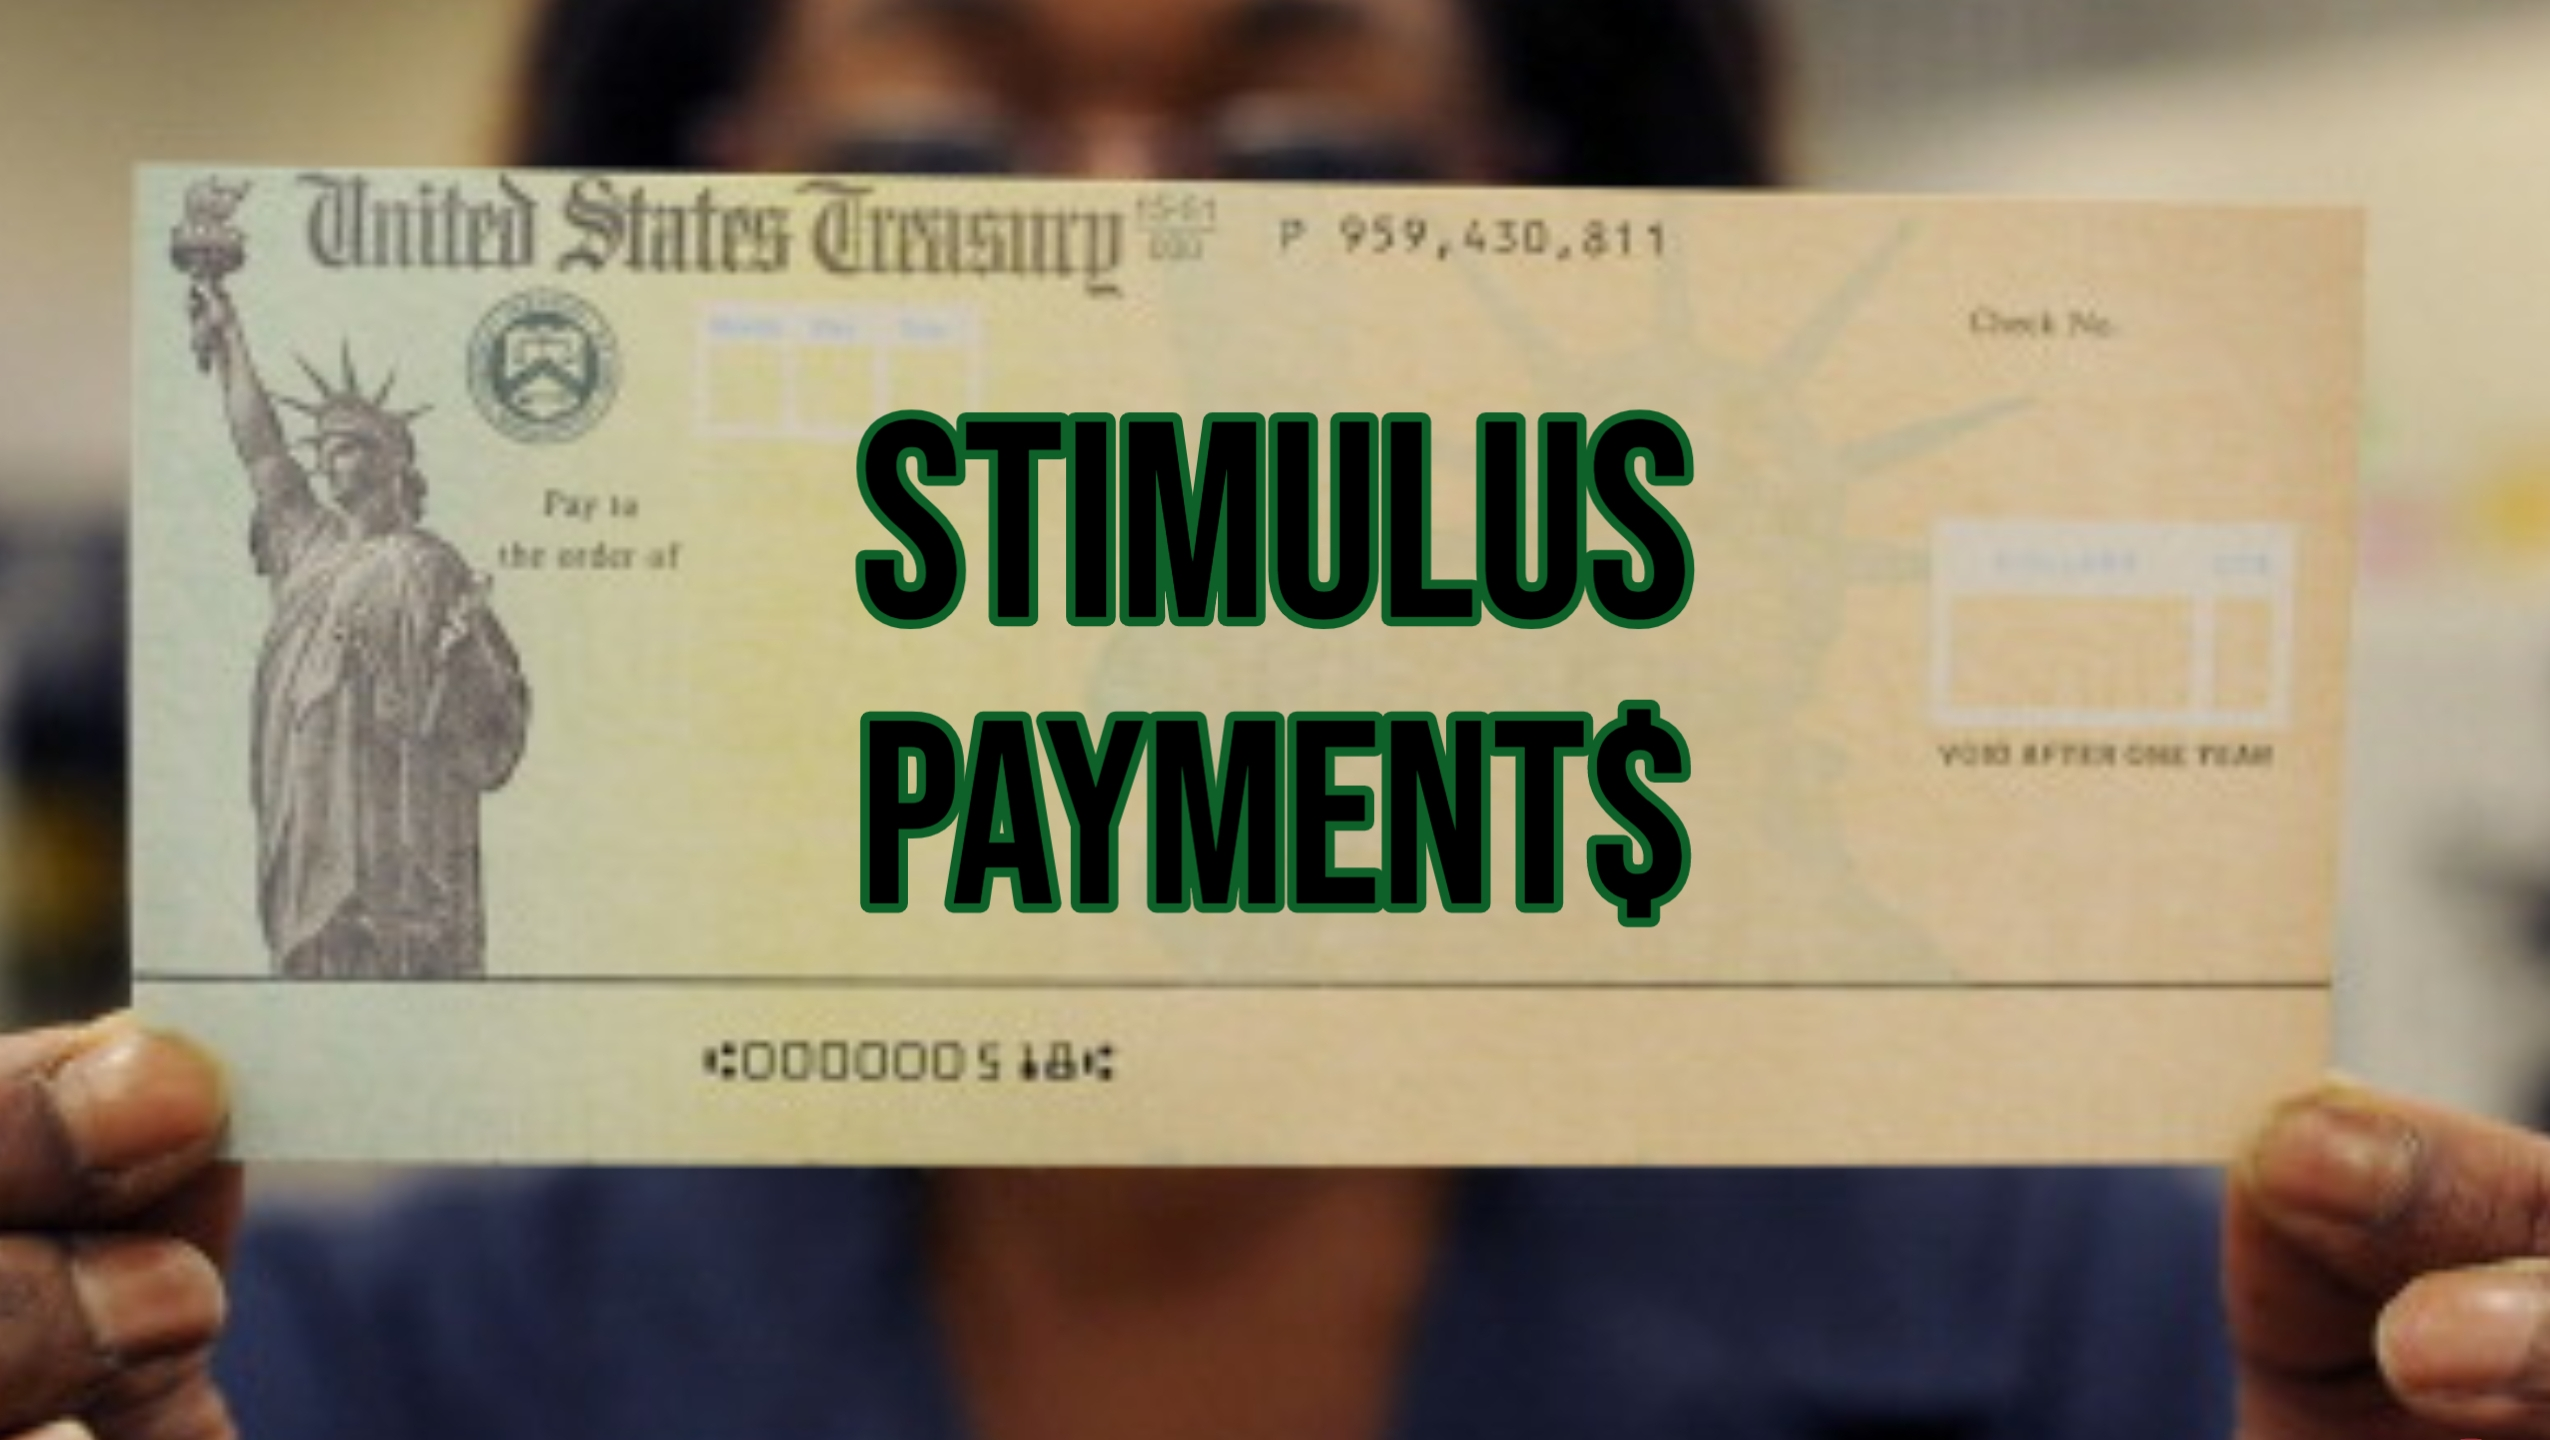 Stimulus check: Do you have to pay tax on the money? - WLNS 6 News